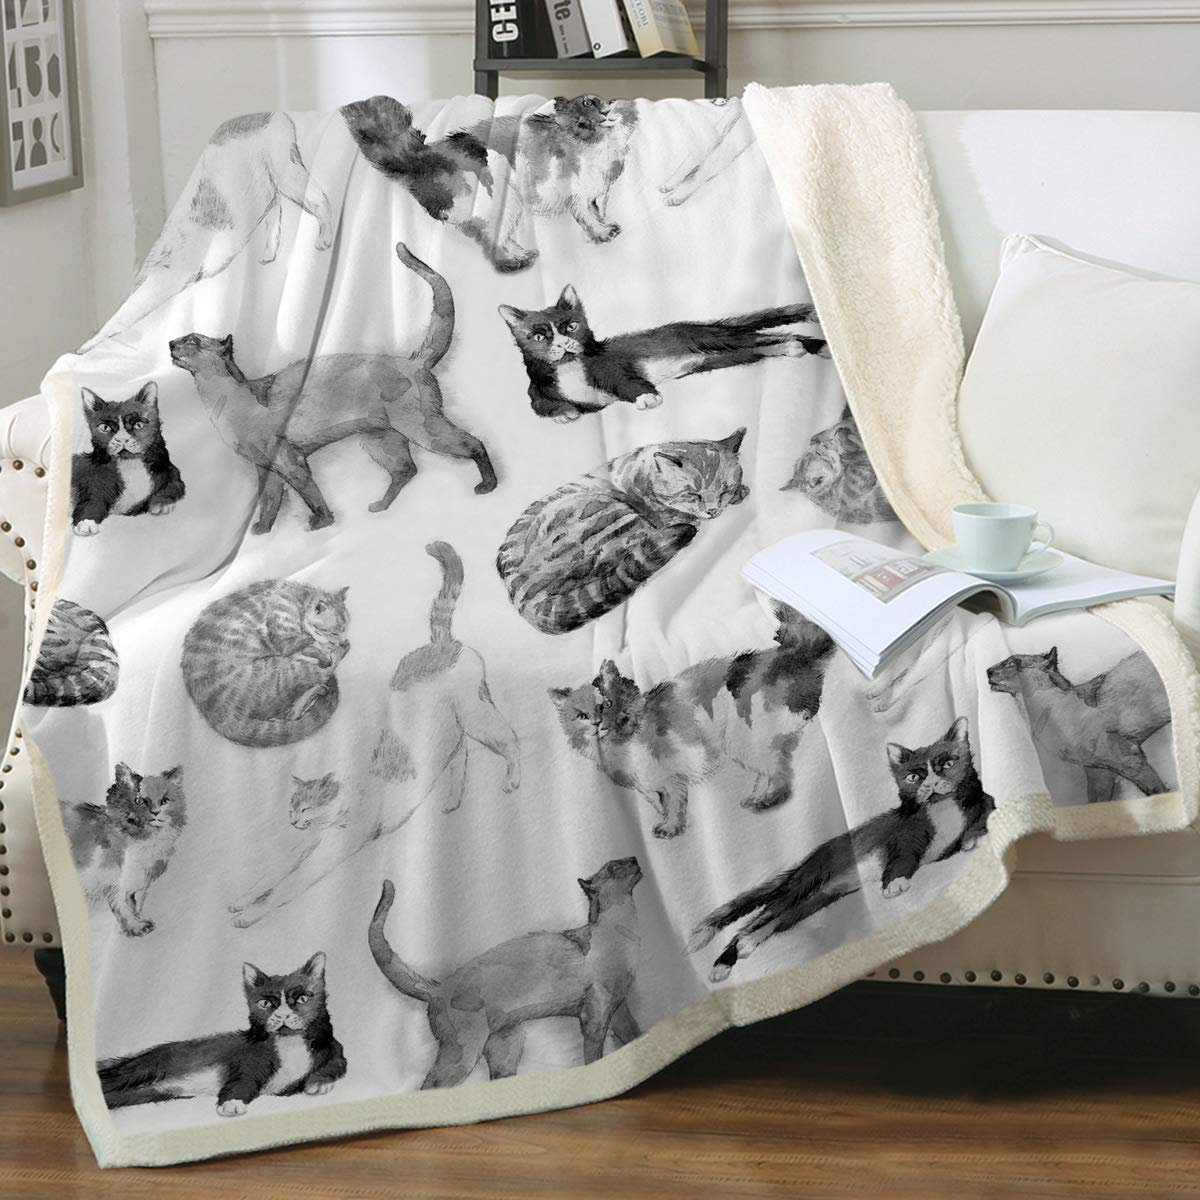 "Sleepwish Cat Fleece Throw Blanket Girls Kids Cute Animals Pet Sherpa Blanket for Bed Couch Chair Super Soft Warm and Comfy Cat Lover Gifts,Watercolor Vintage Black White Cats, Twin (60"" X 80"")"